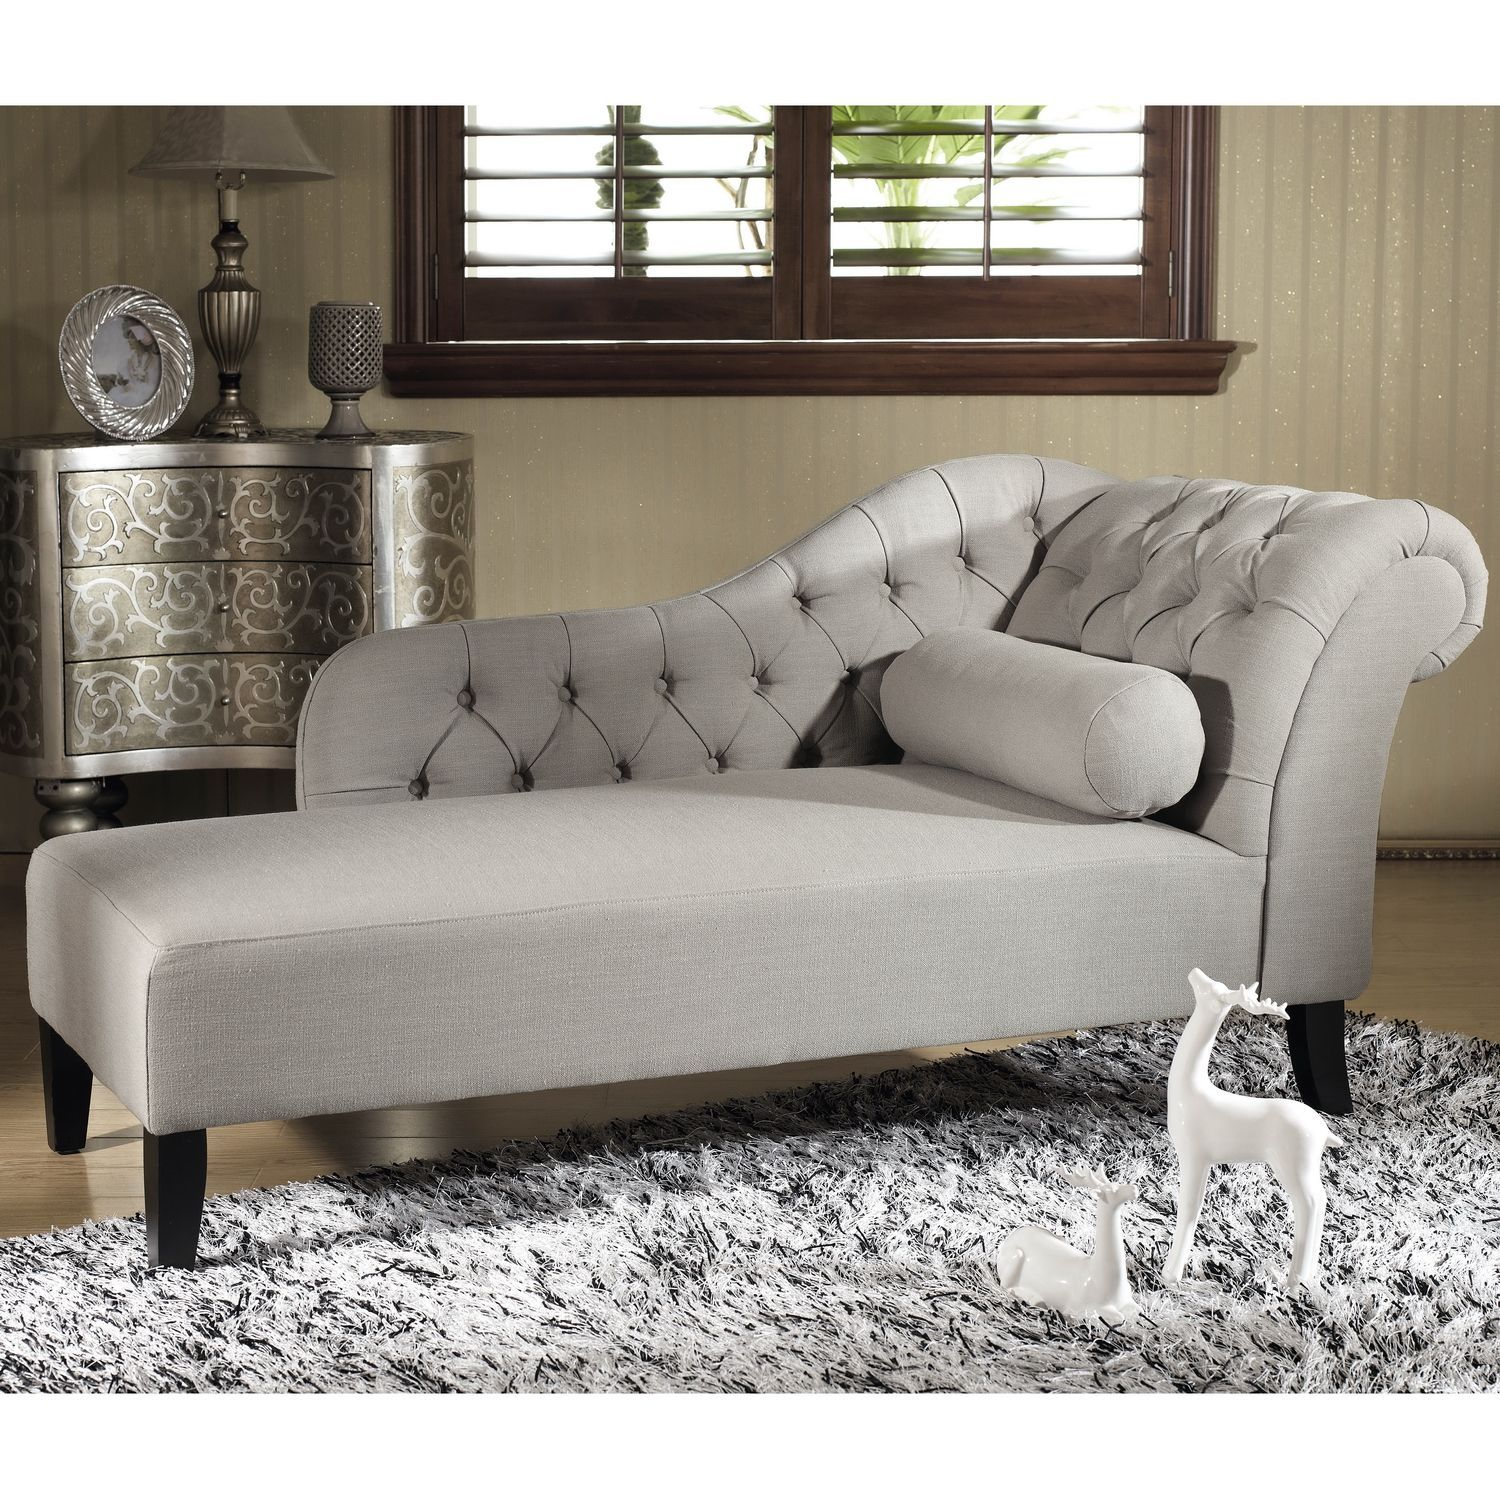 Exceptionnel Baxton Studio U0027Aphroditeu0027 Tufted Putty Gray Linen Modern Chaise Lounge ( Chair Grey), Grey